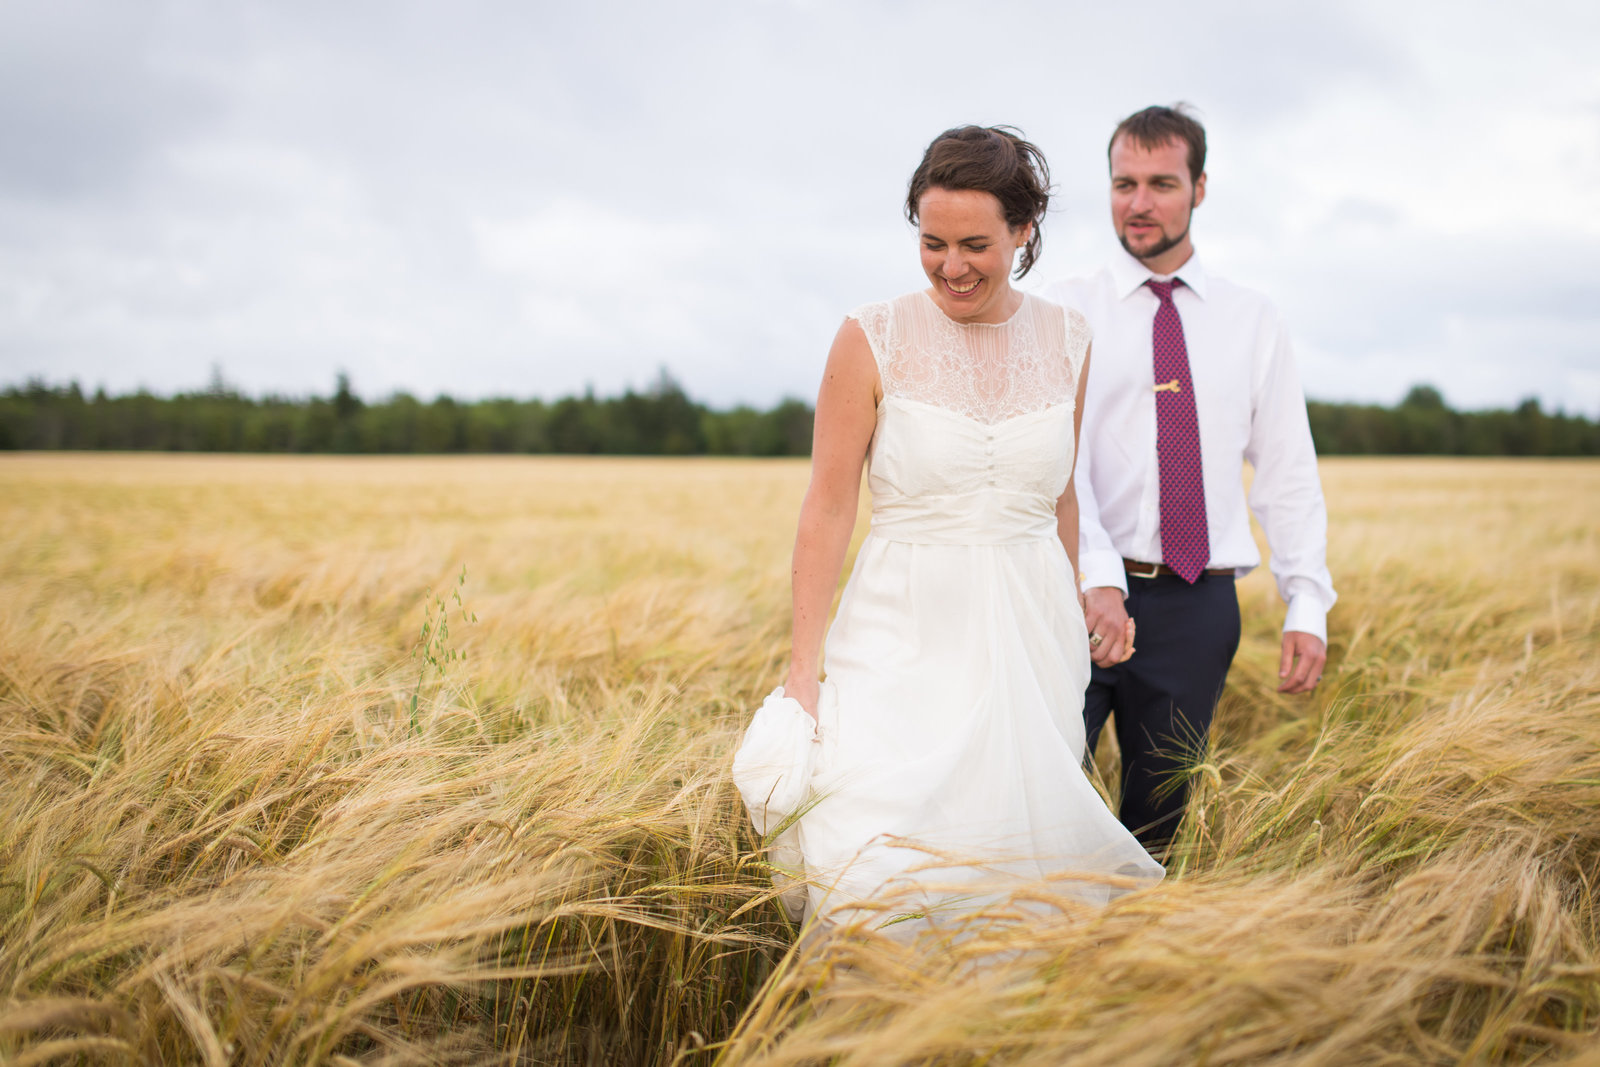 Saint John NB Wedding Photographers & Filmmakers - Souris, PEI Wedding21